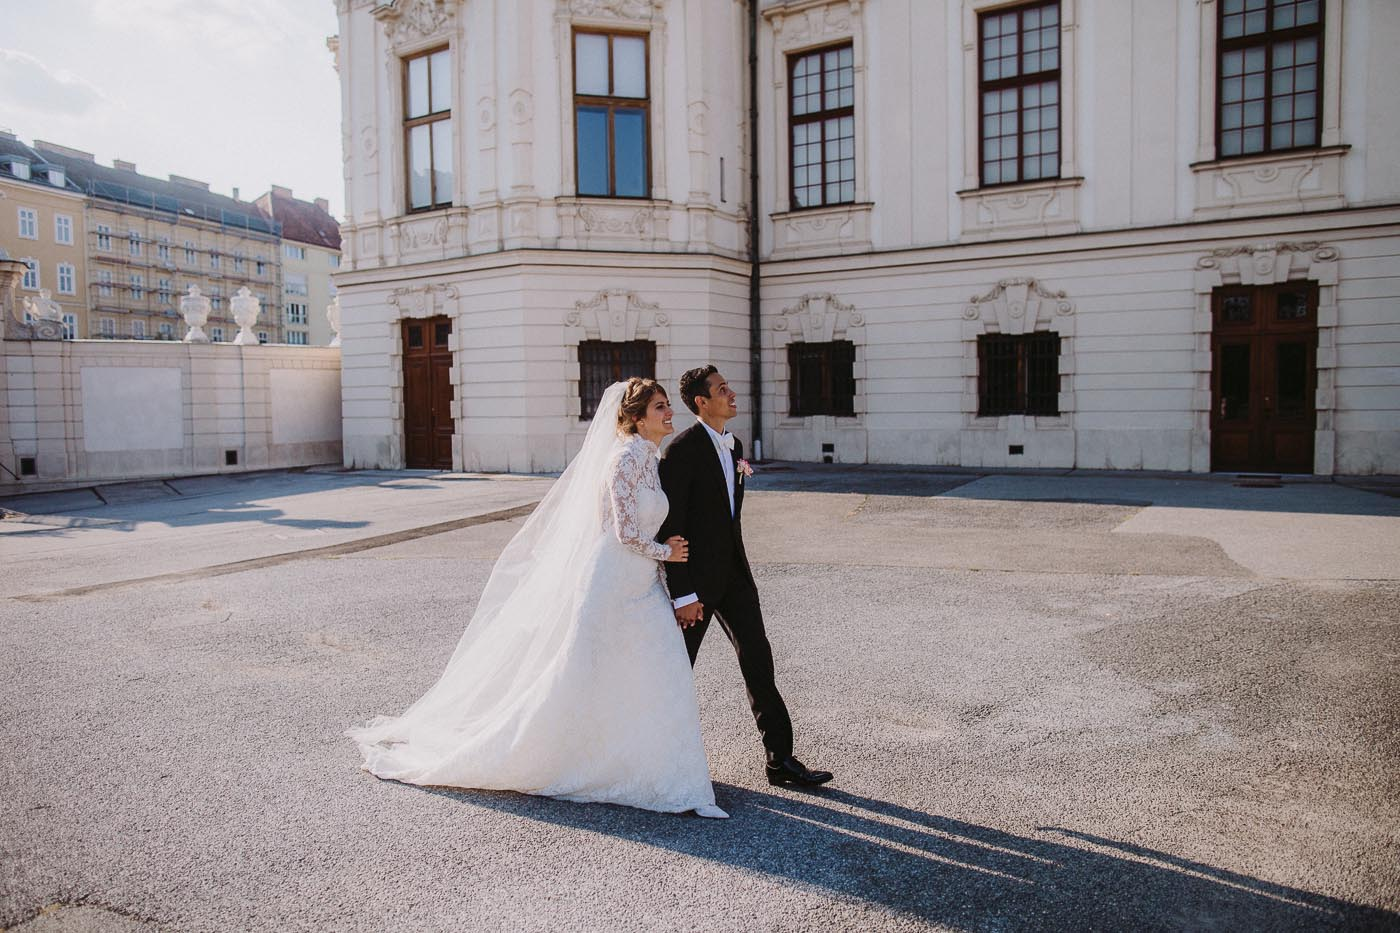 wedding-palais-liechtenstein-vienna-394